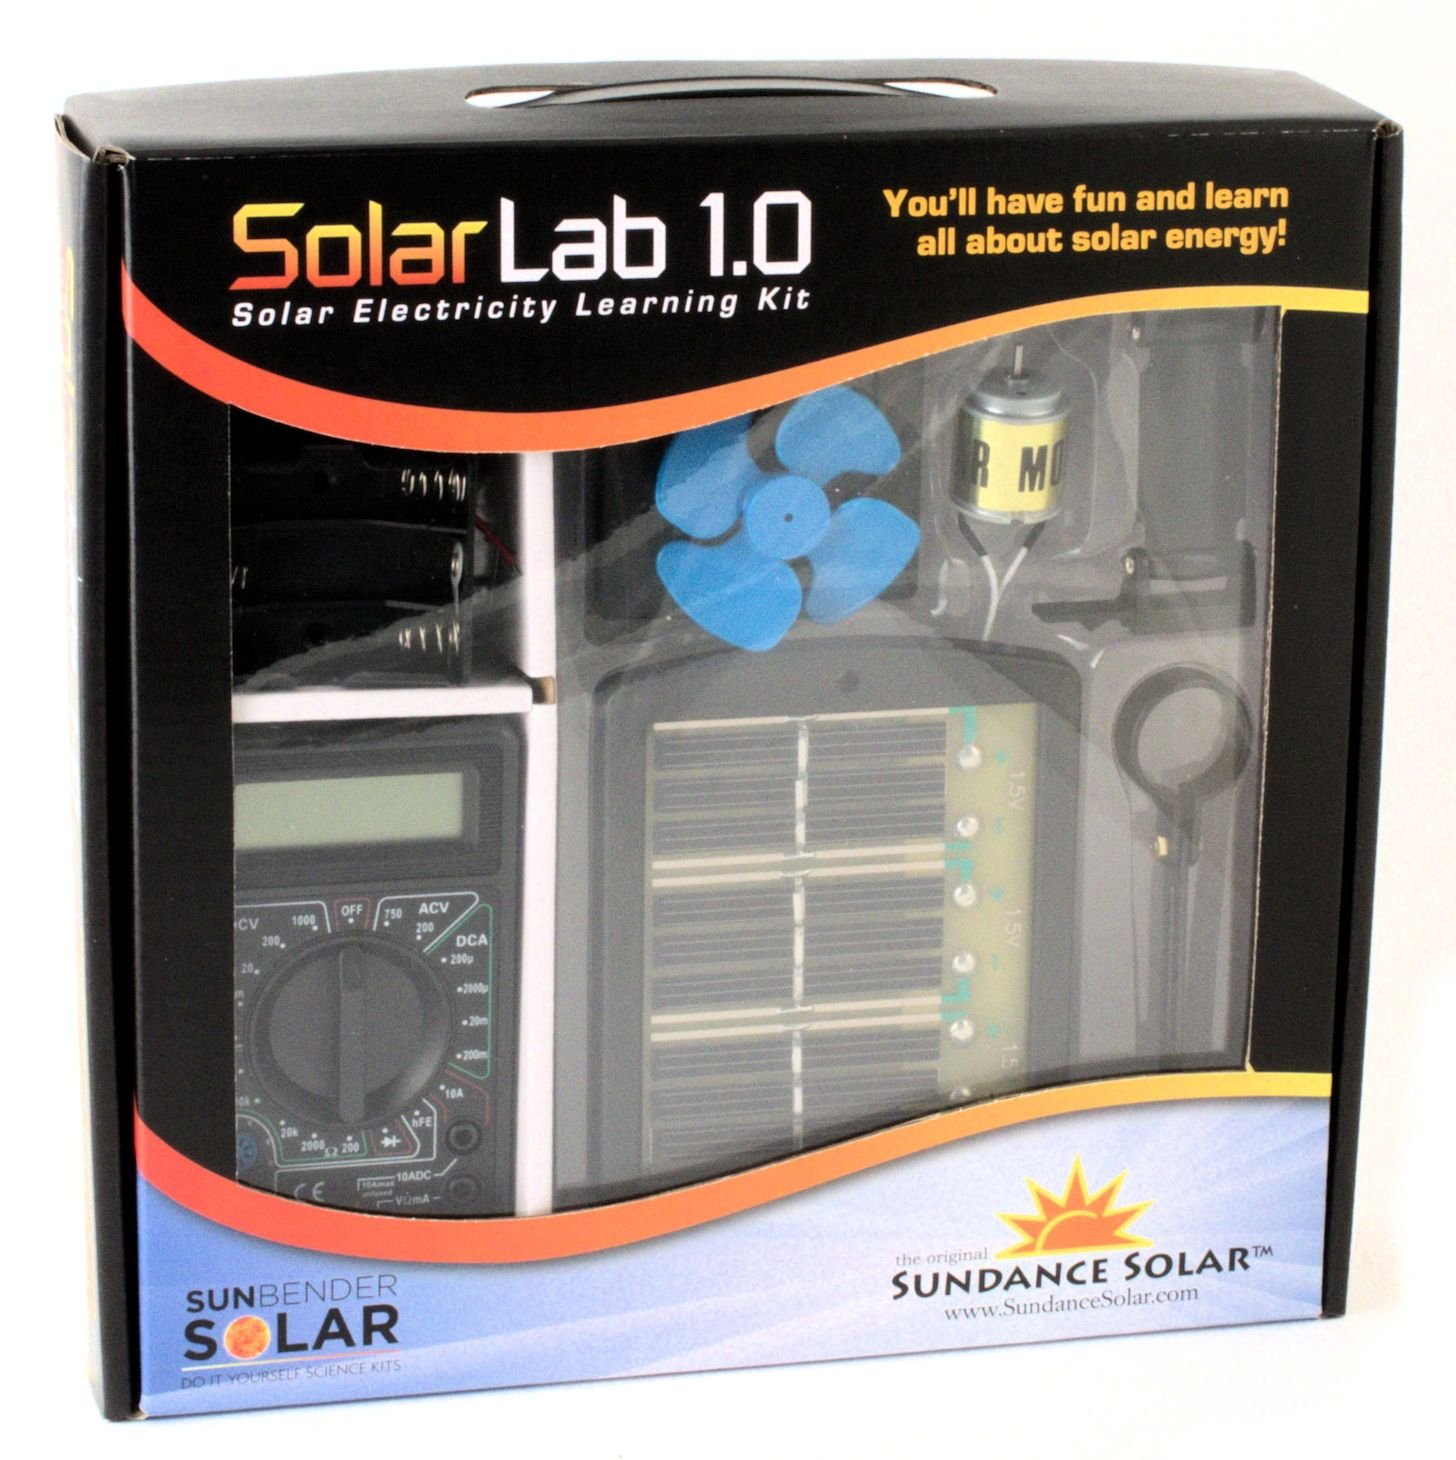 Amazon.com: Solar Lab 1.0 Electricity Learning Kit: Industrial ...